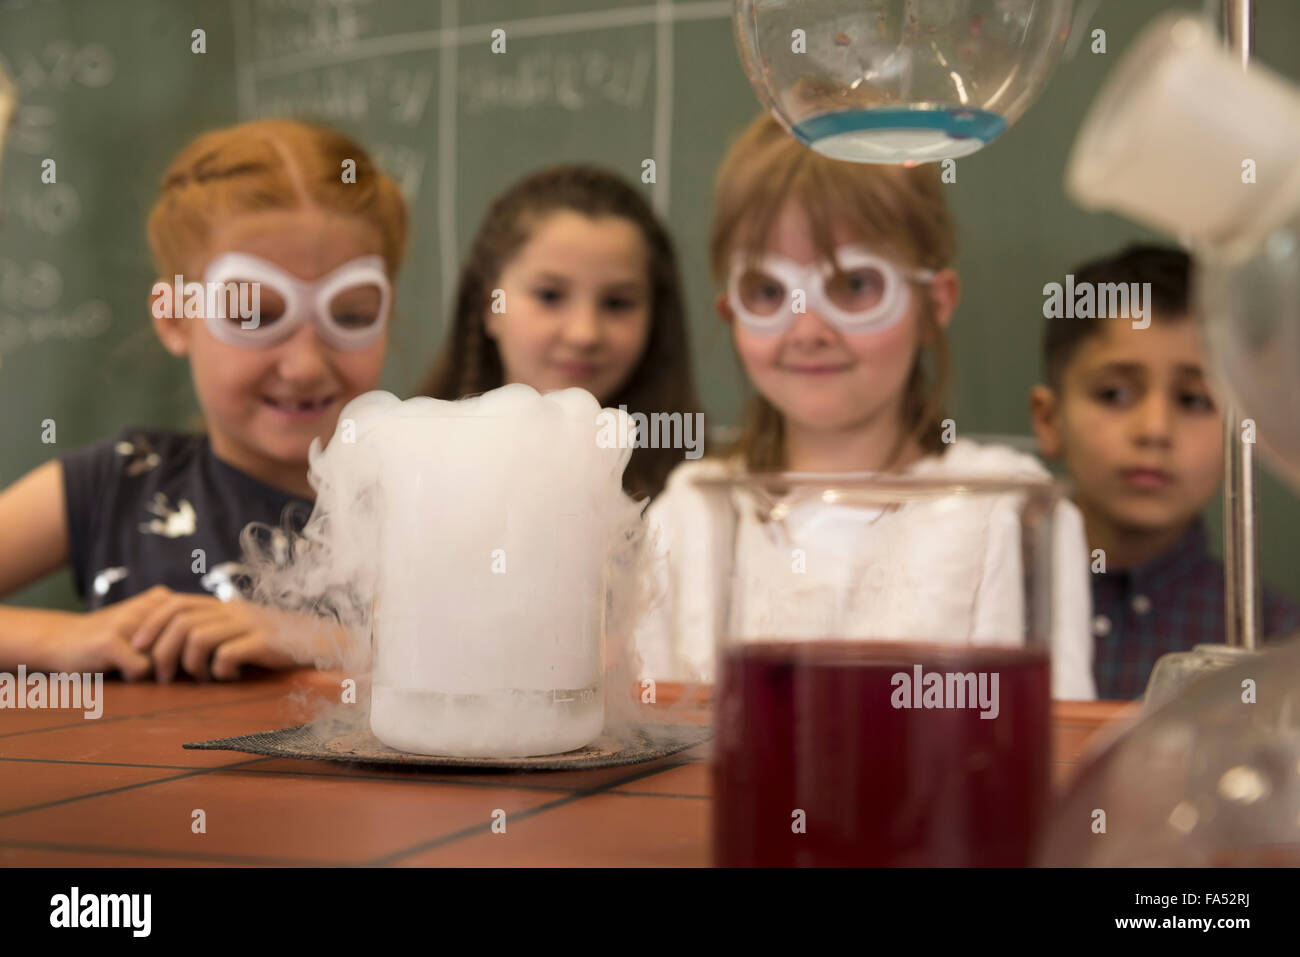 Elementary students doing experiment with reeky liquid in chemistry class, Fürstenfeldbruck, Bavaria, Germany - Stock Image